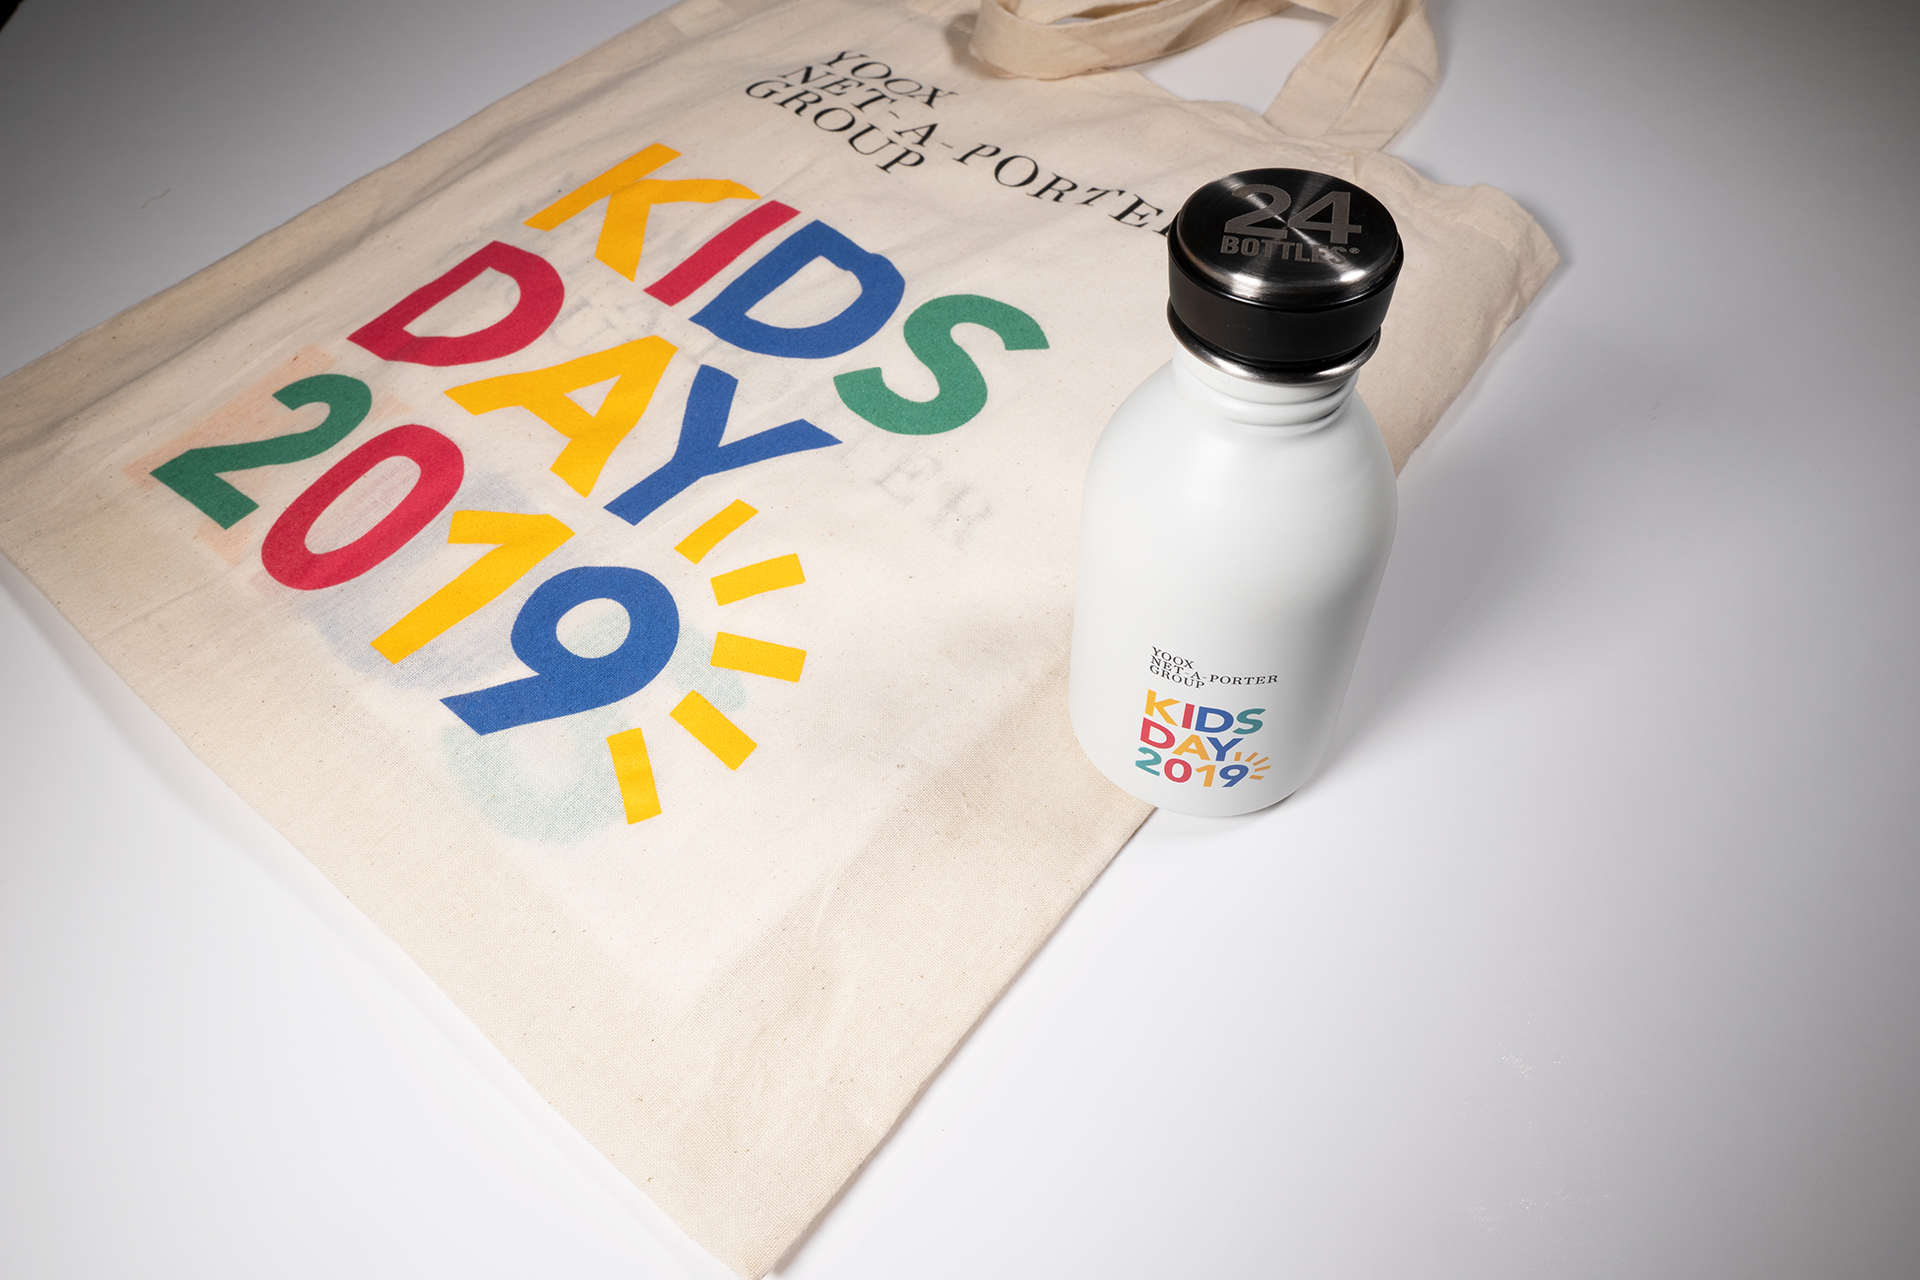 Branded drink bottle from the Kids Day Goody bag